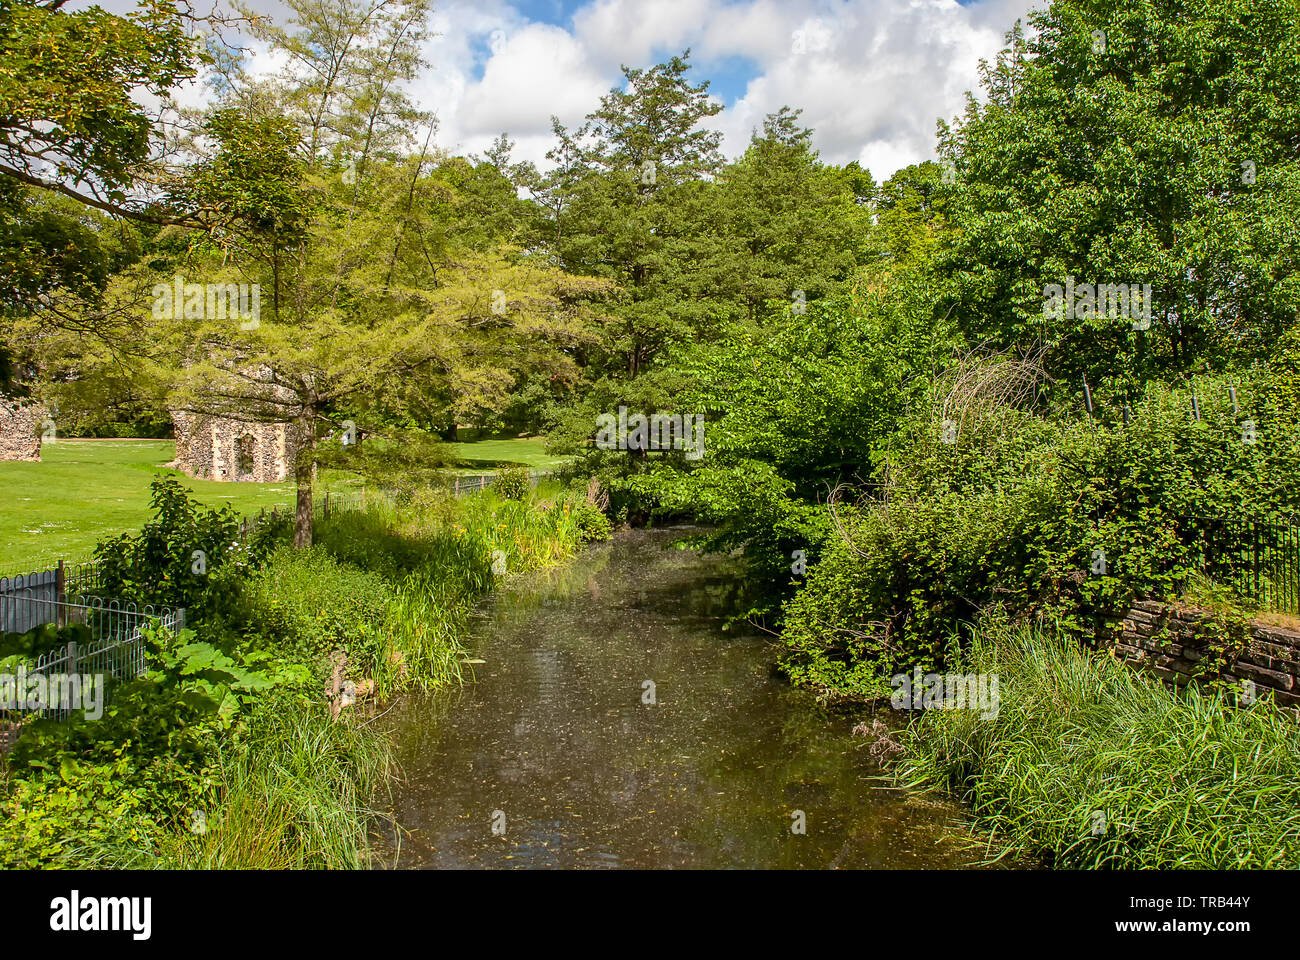 The River Lark next to the Abbey Gardens in Bury St Edmunds, Suffolk - Stock Image